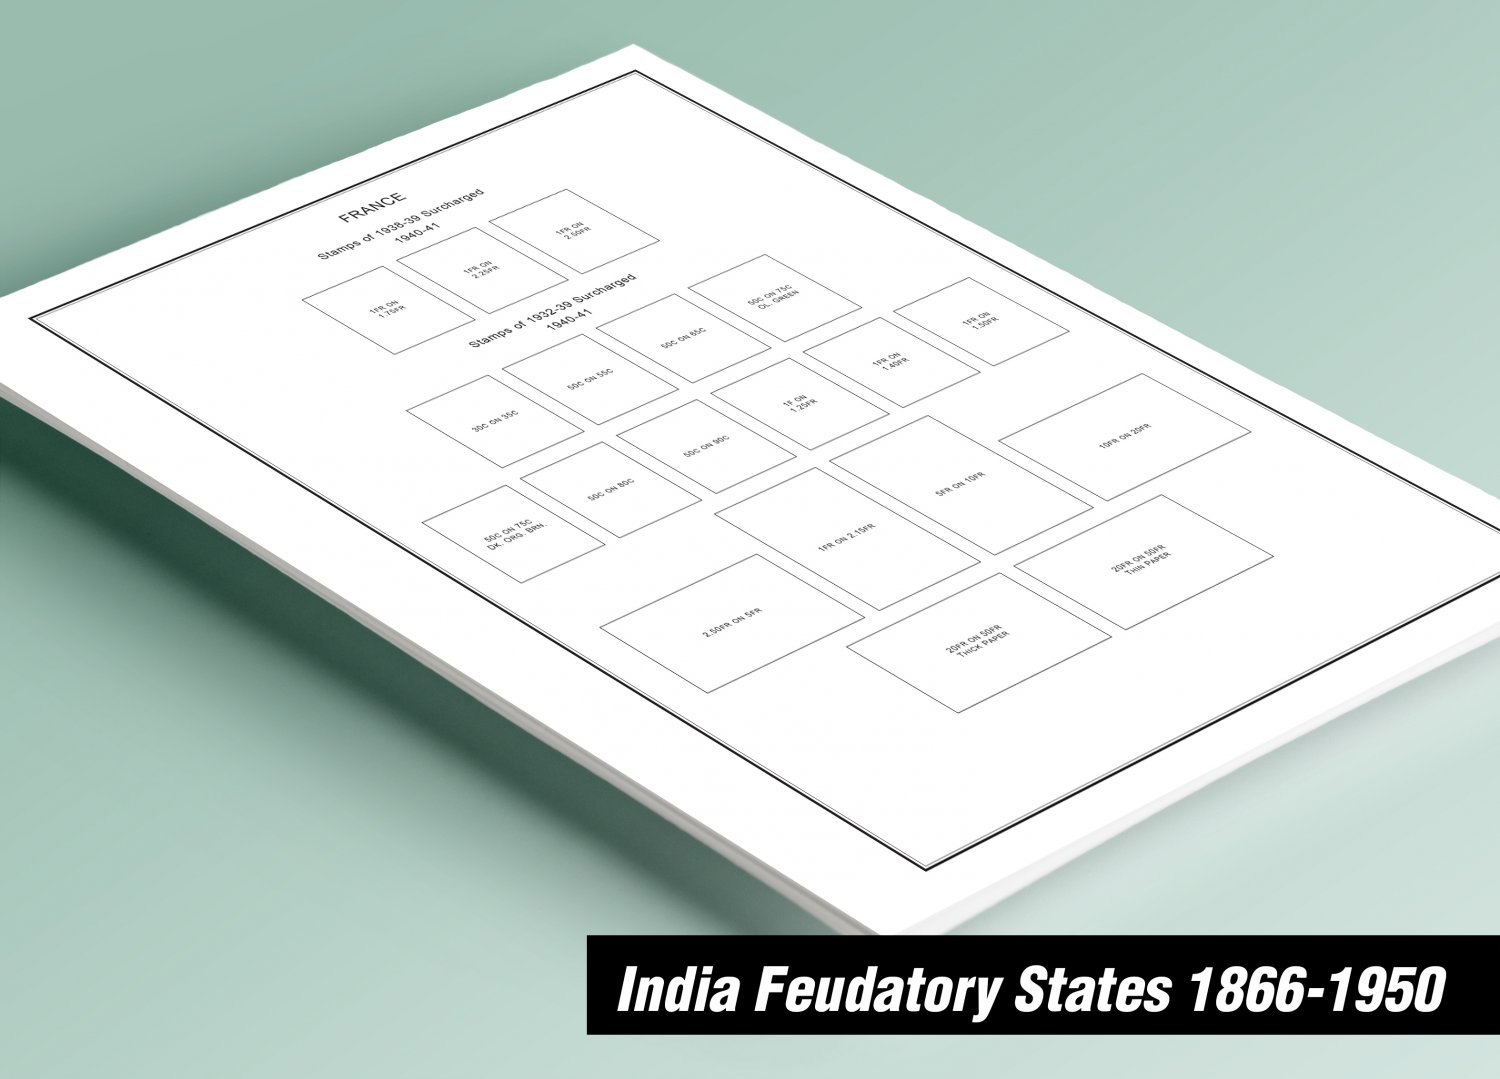 PRINTED INDIA FEUDATORY STATES 1866-1950 STAMP ALBUM PAGES (55 pages)